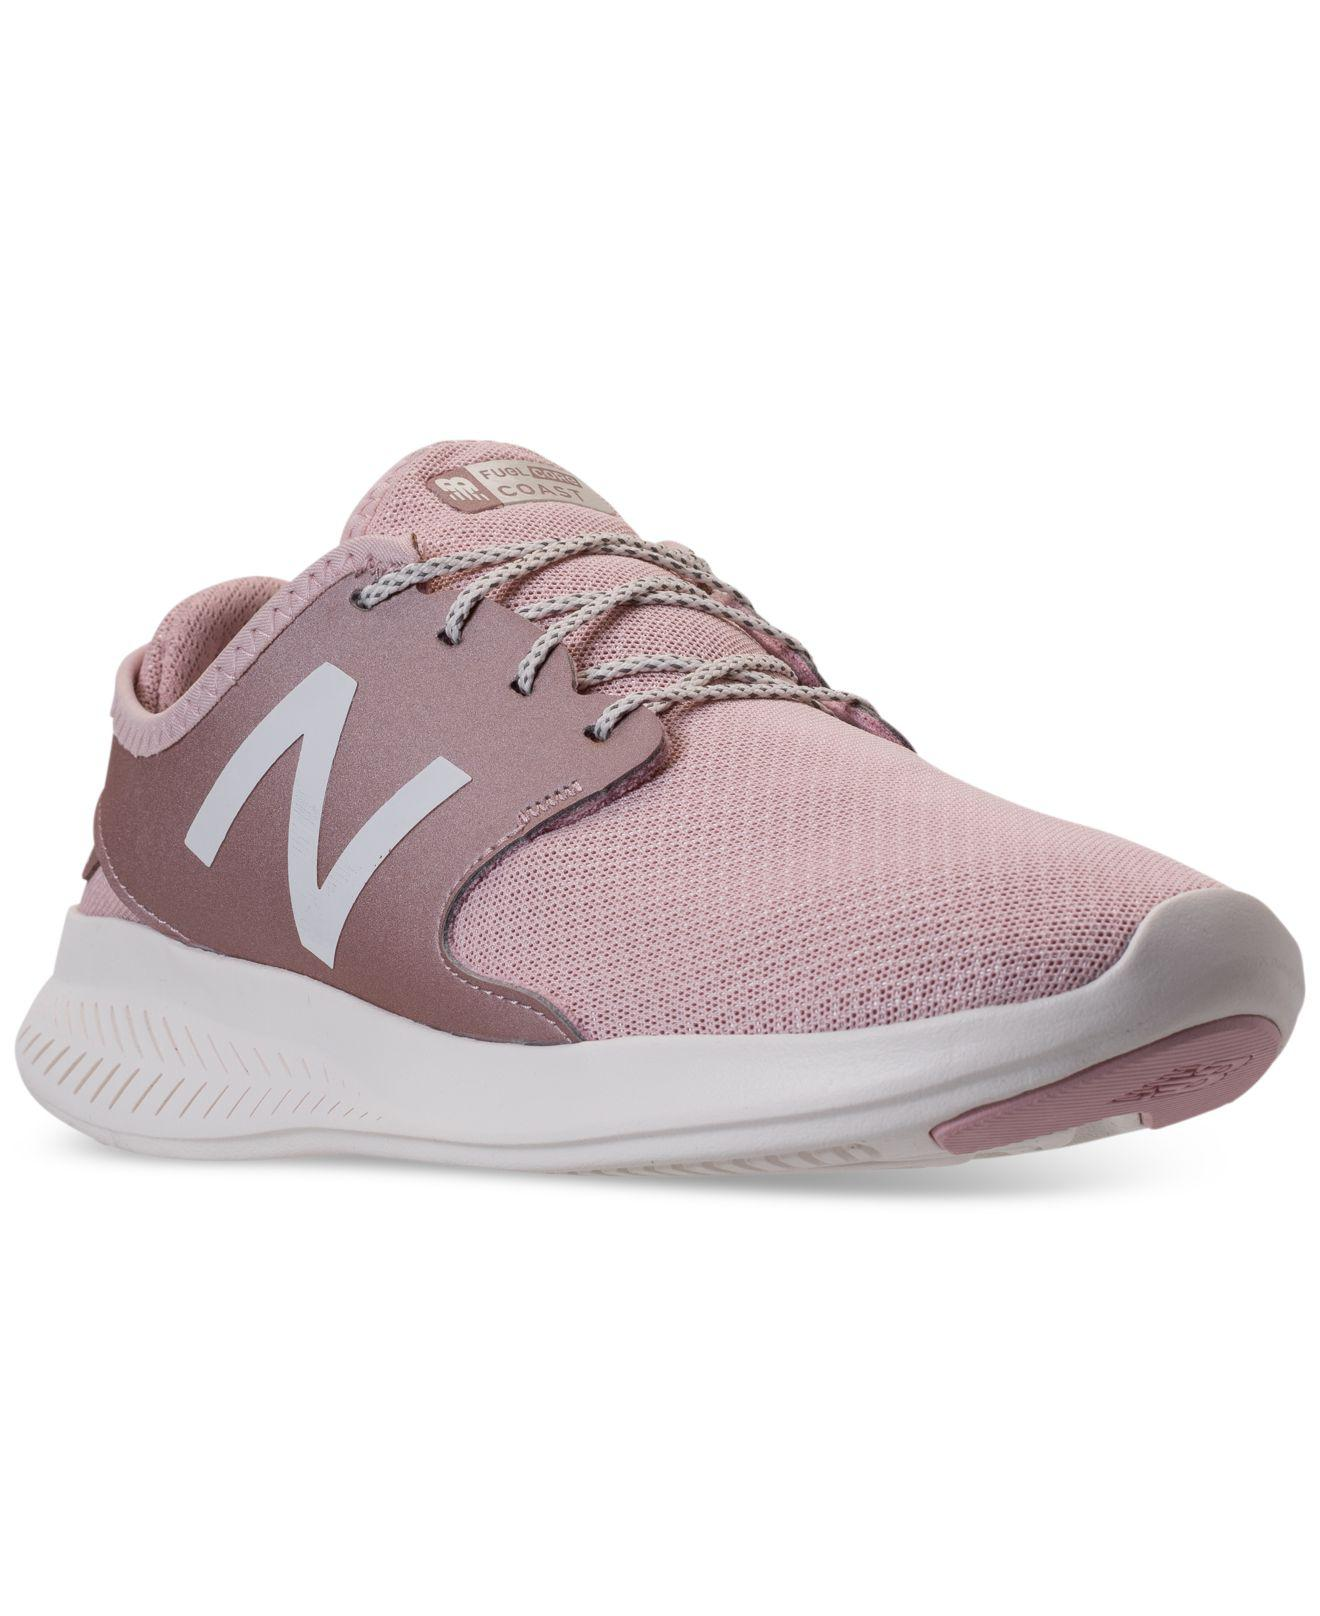 New Balance Women's FuelCore Coast V4 Running Sneakers from Finish Line 3p3DY88a